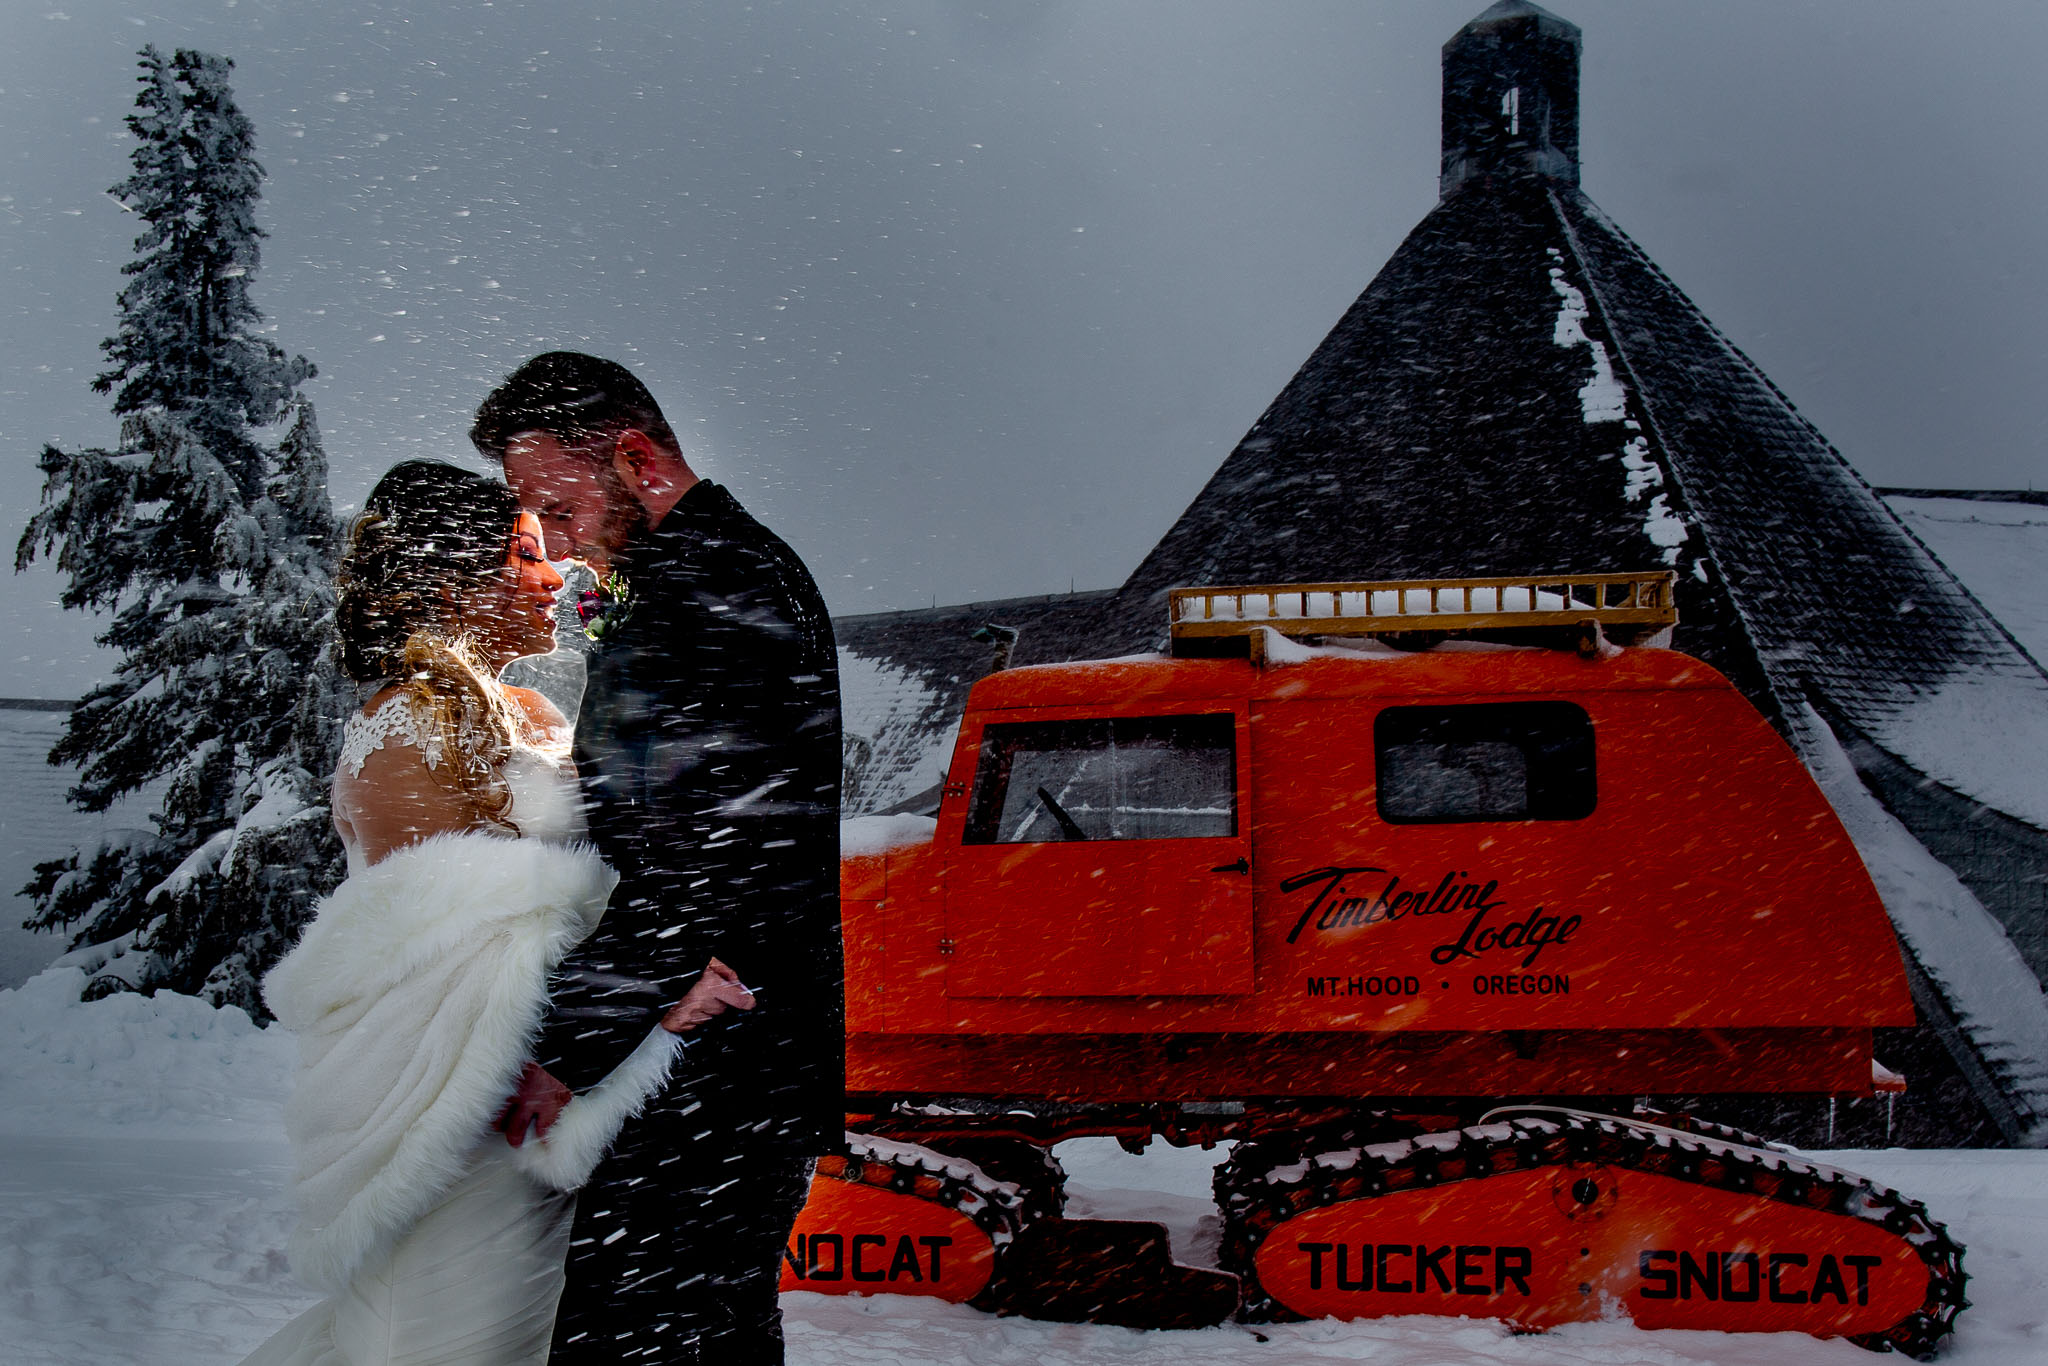 Bride and Groom creatively lit in snow near snowcat at Timberline Lodge for their Ravens Nest Wedding